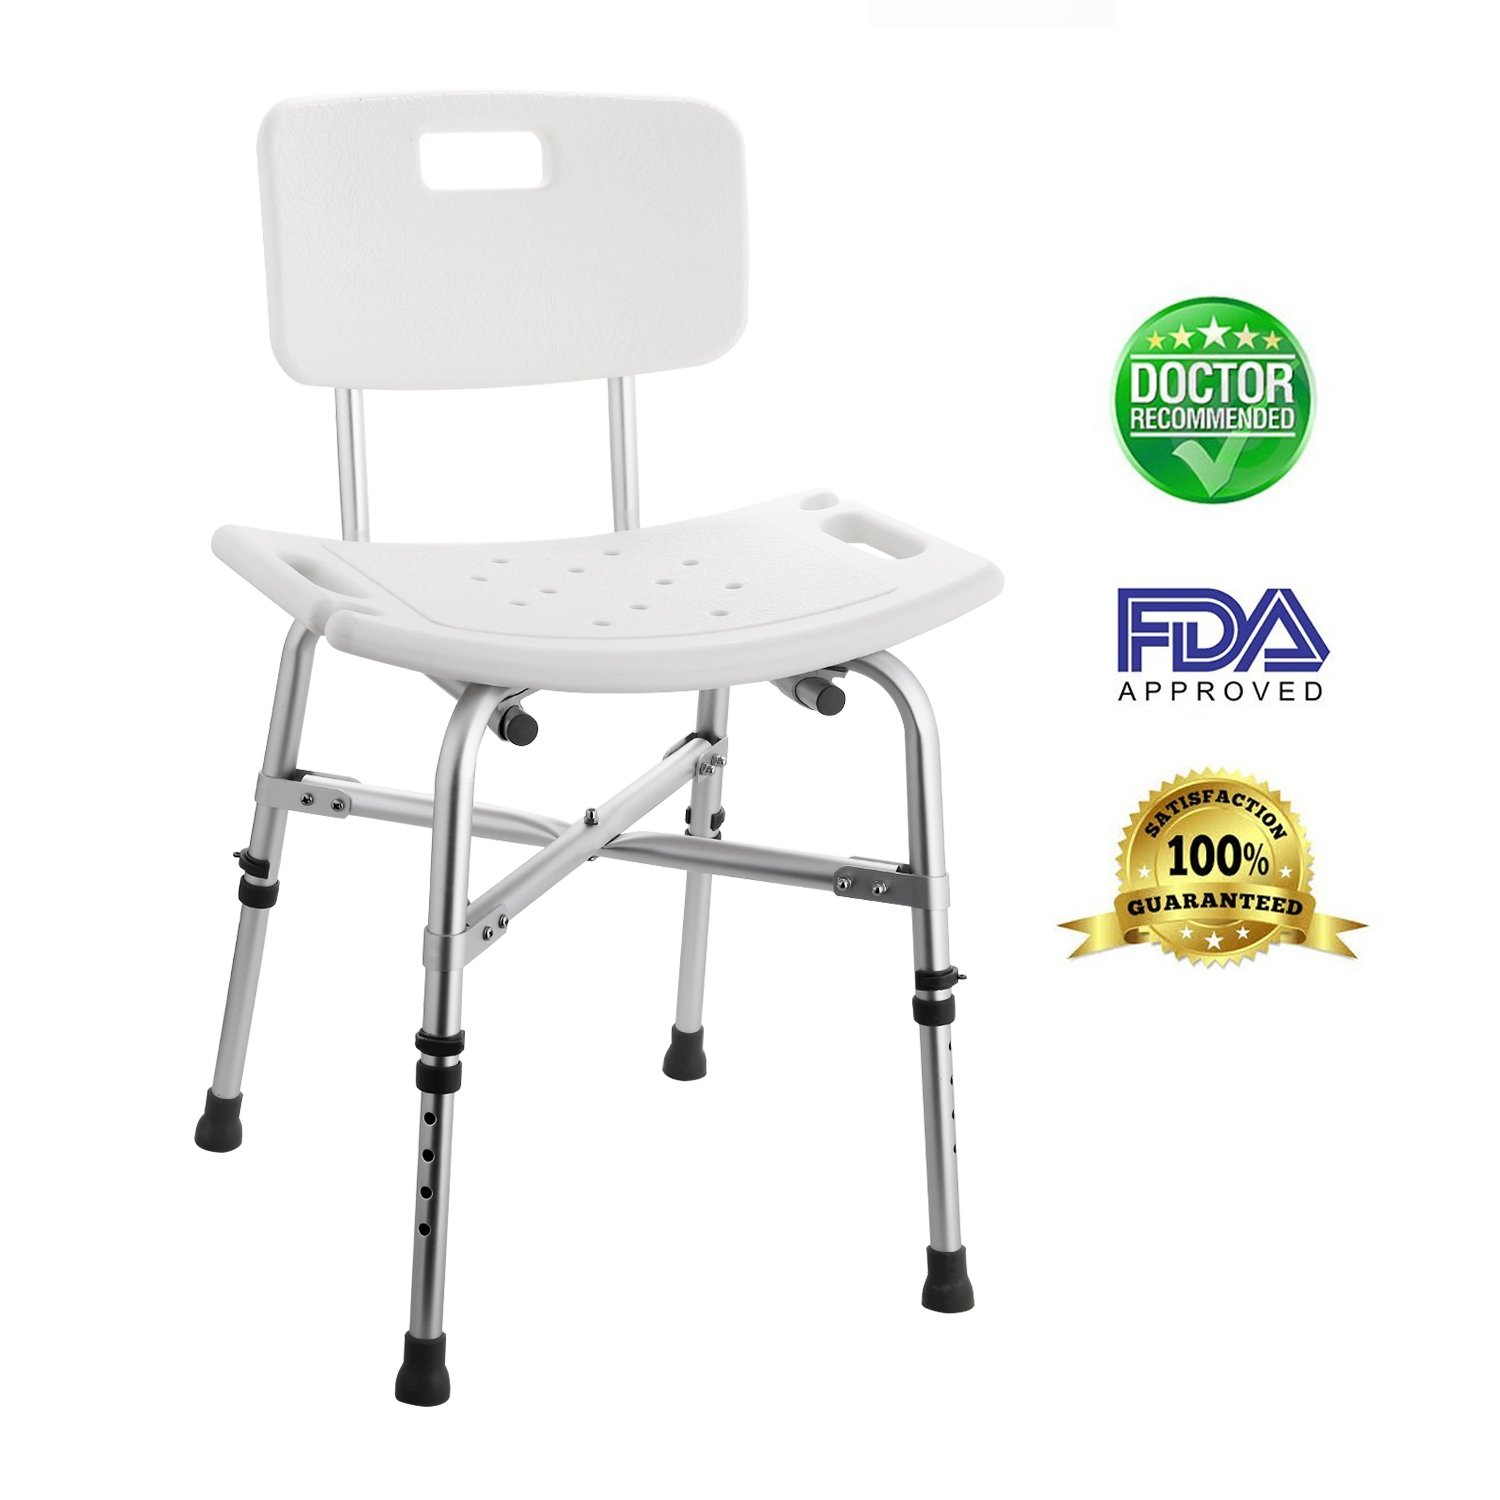 [ US Stock ] Bamboo Bathroom Shower Bench Stool Bath Seat with Storage Shelf 2-Tier Luxury Spa Seat for Indoor Or Outdoorstools for Bathroom (White)